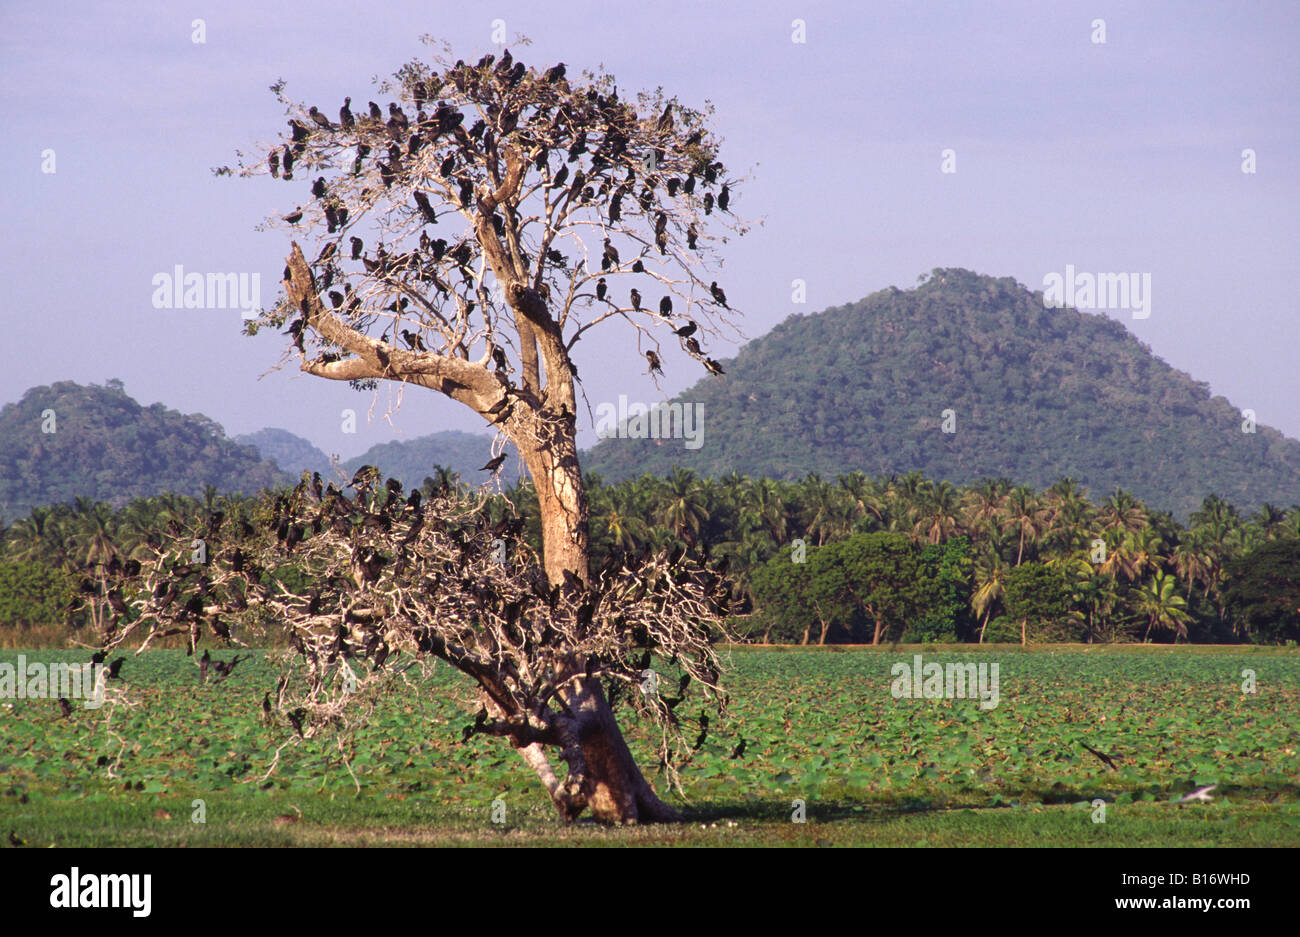 Tree full of birds. Yala West National Park (Ruhuna), Sri lanka. - Stock Image